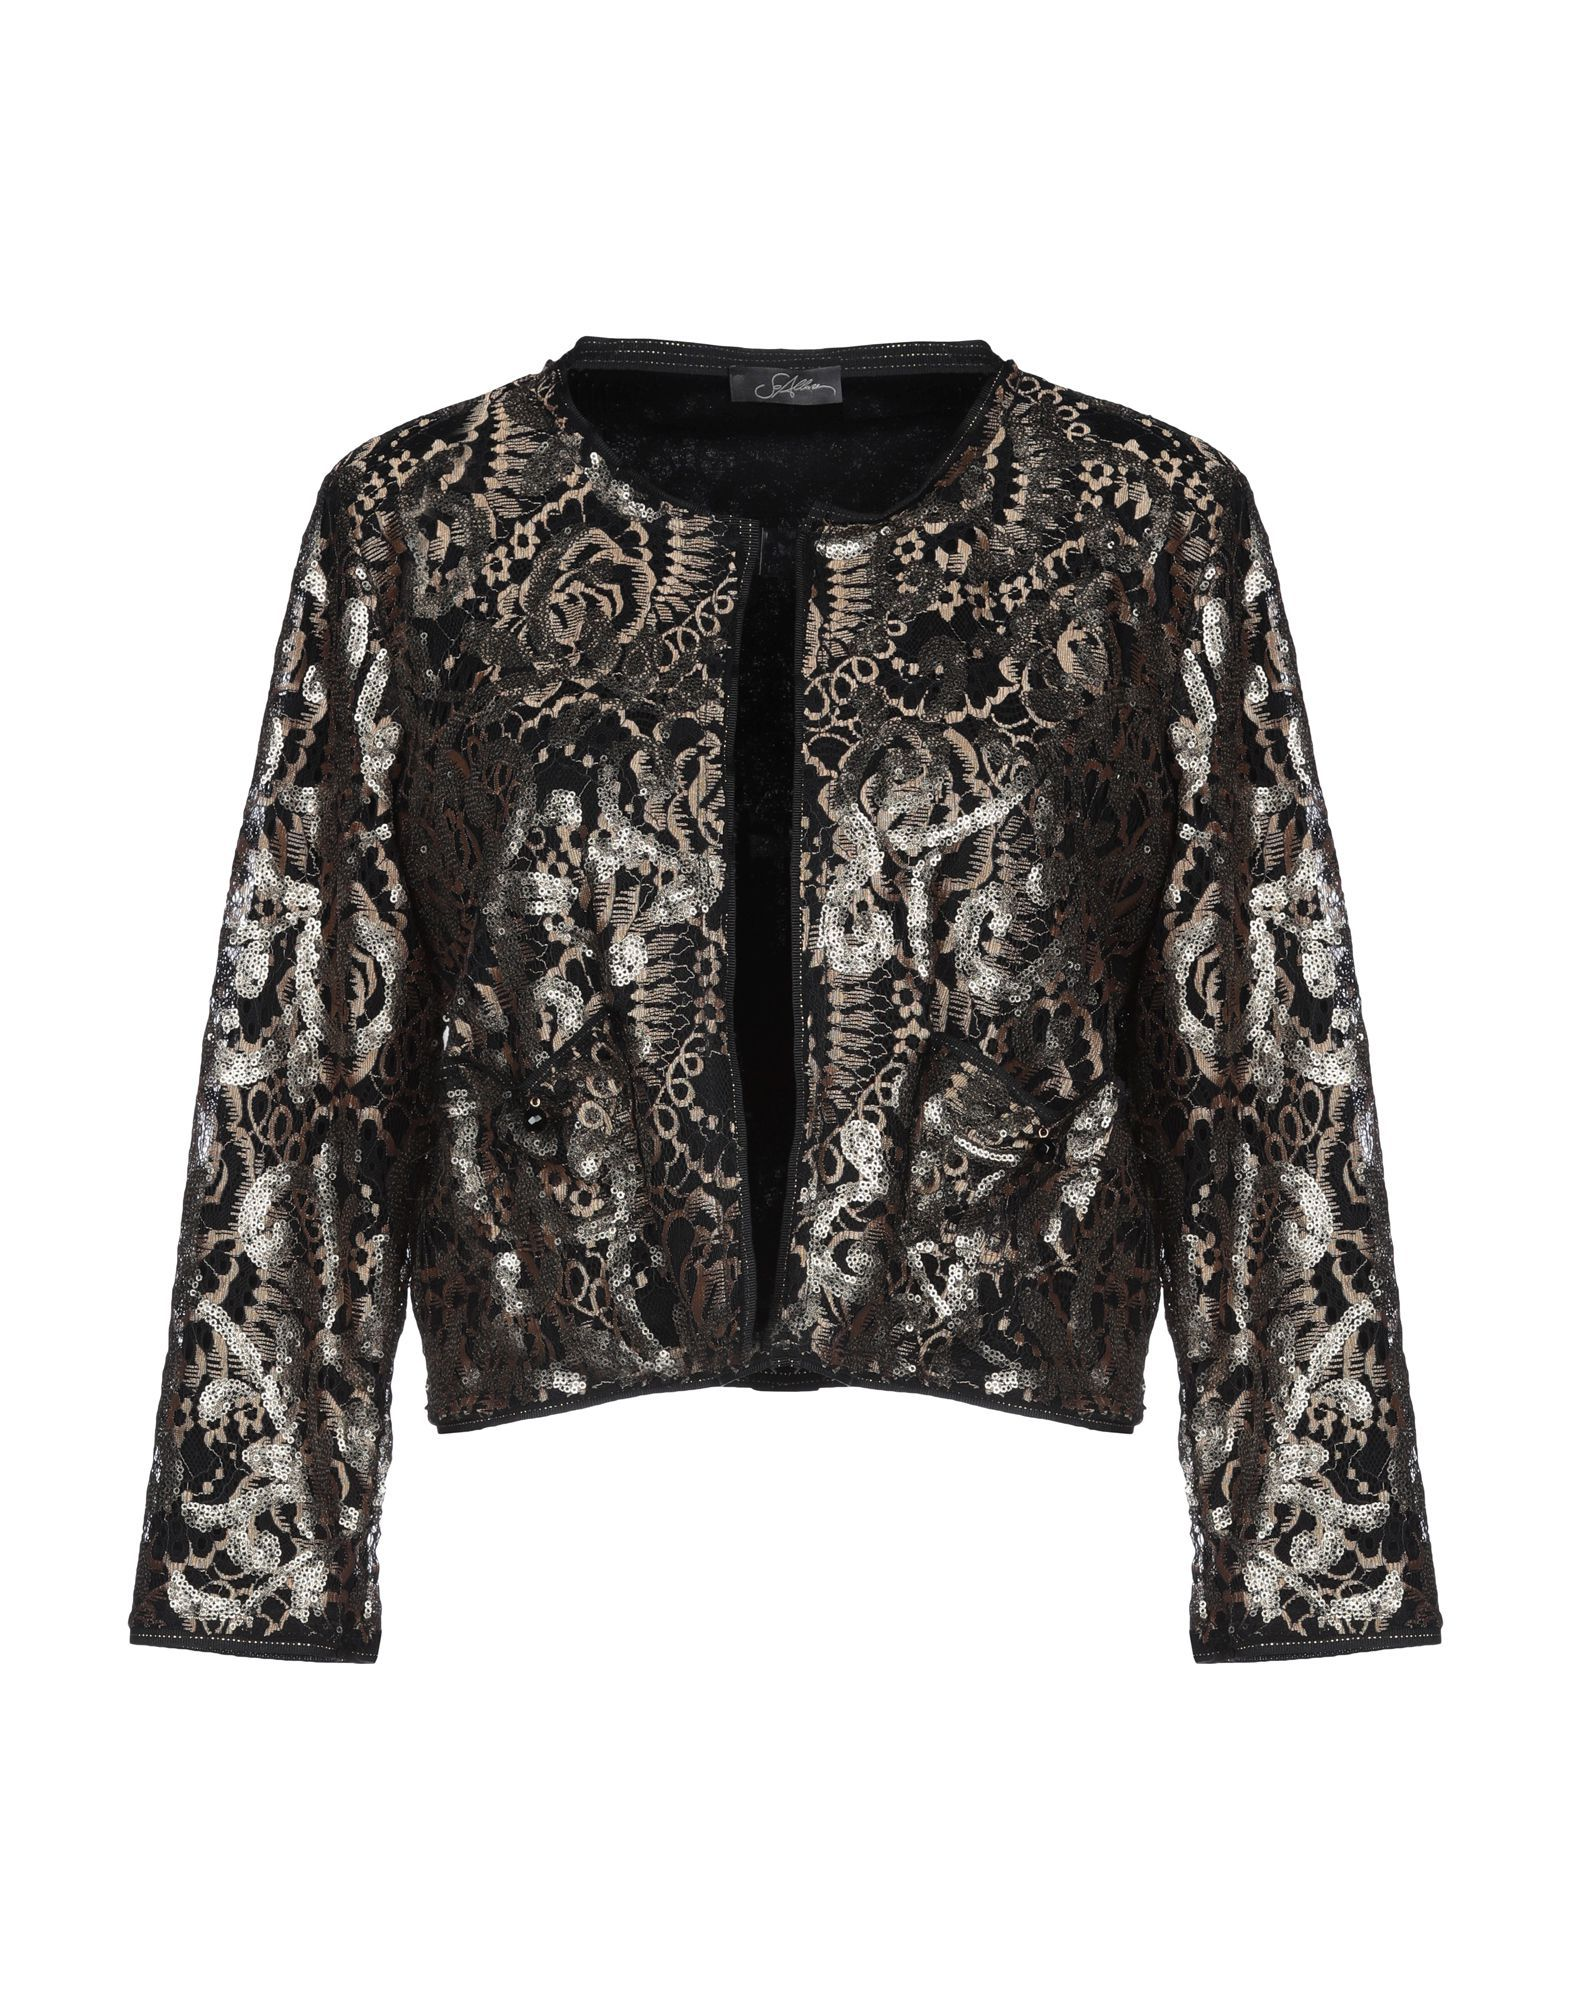 SUITS AND JACKETS Soallure Black Woman Polyester